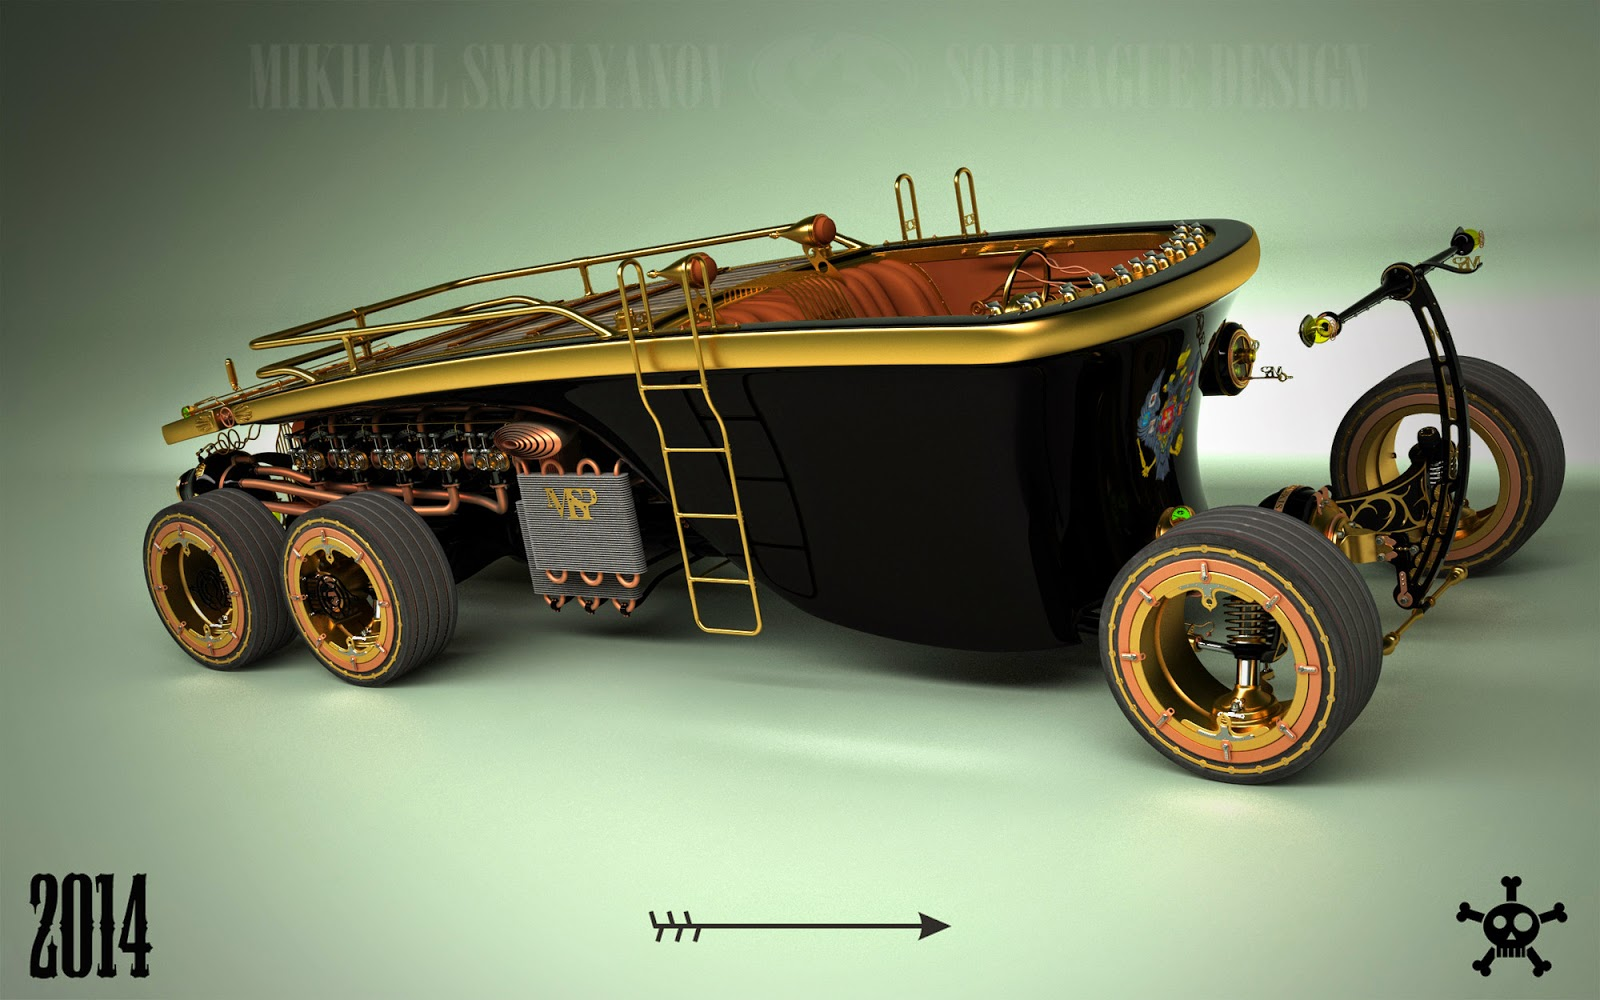 Steampunk 6 wheel land yacht is a car from the future past - Image Gallery Steampunk Car